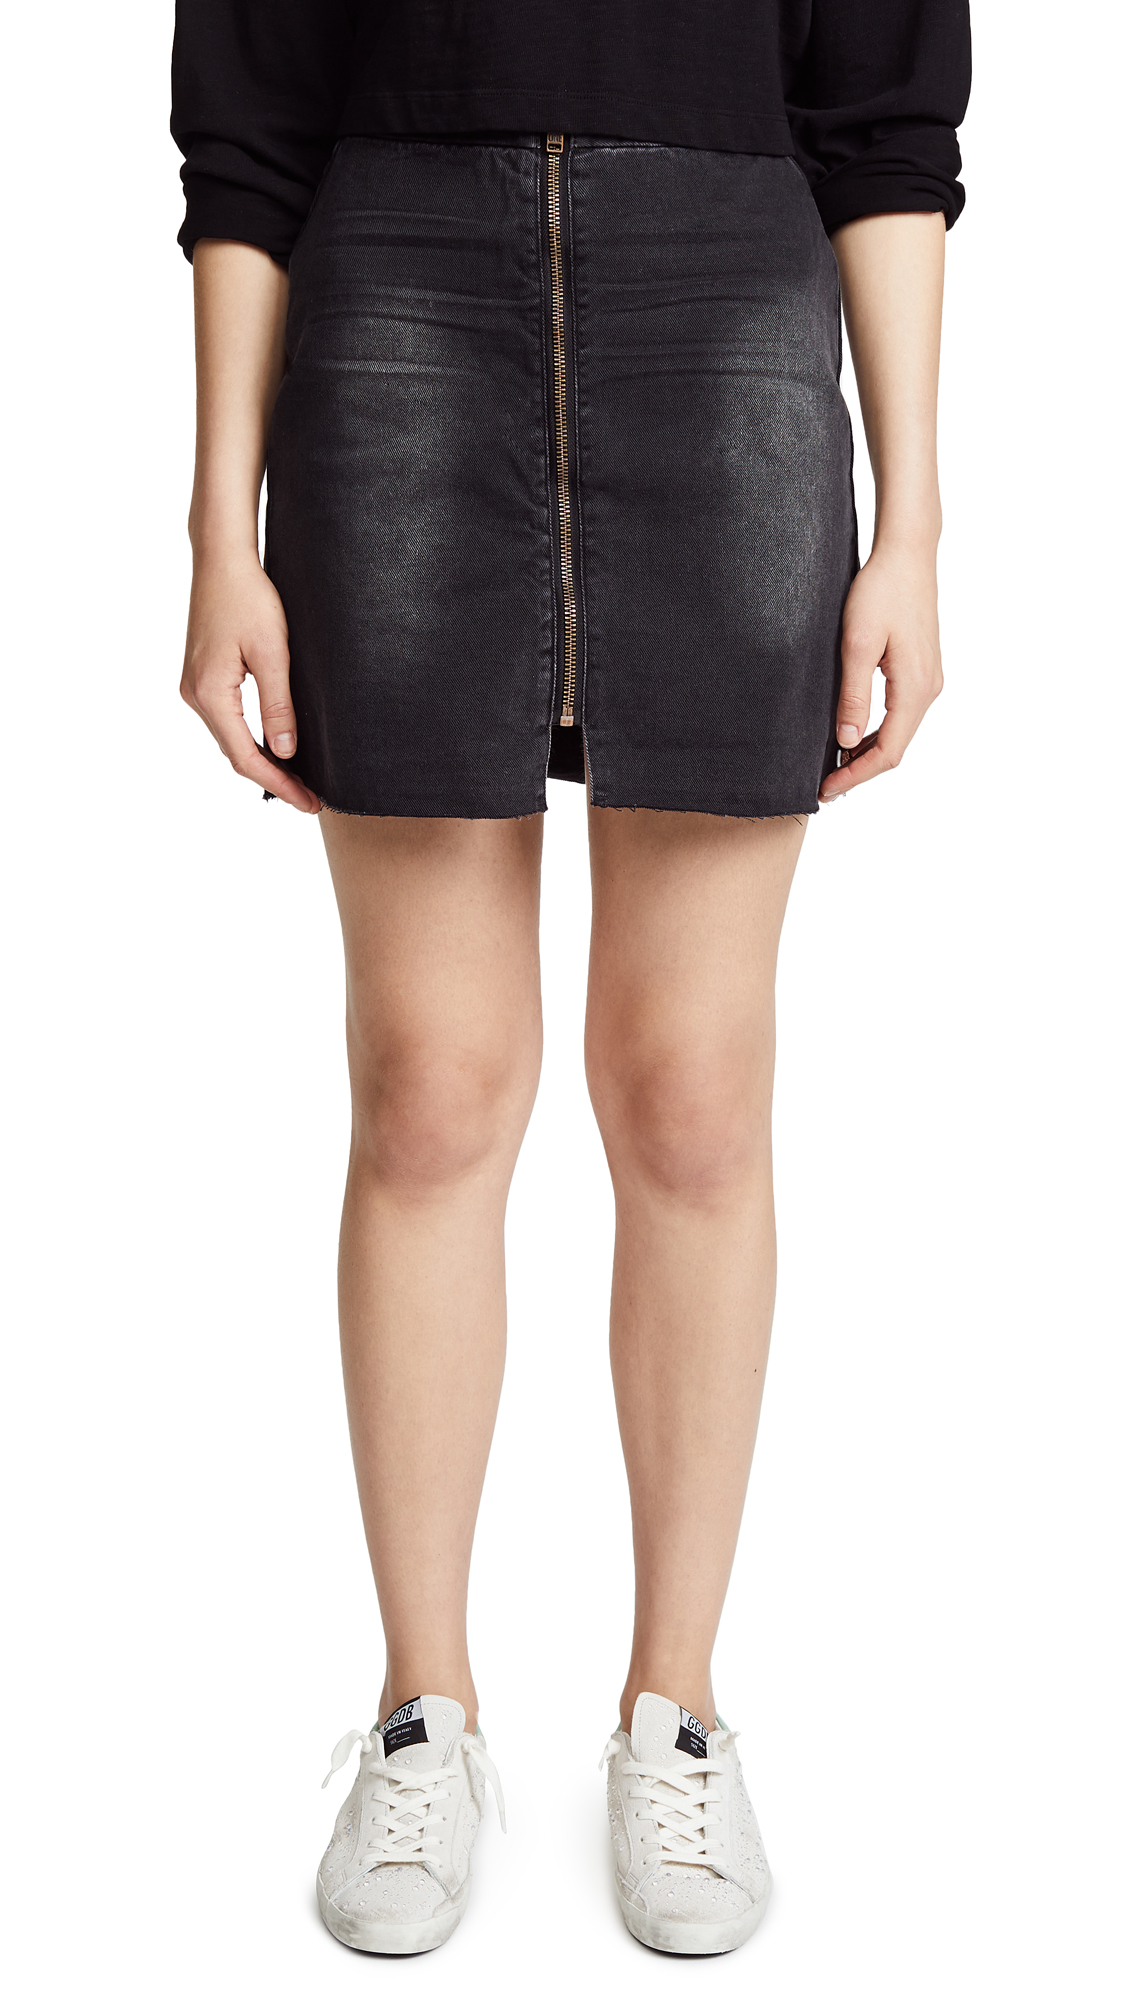 One Teaspoon Viven High Rise A-Line Skirt In Black Anchor